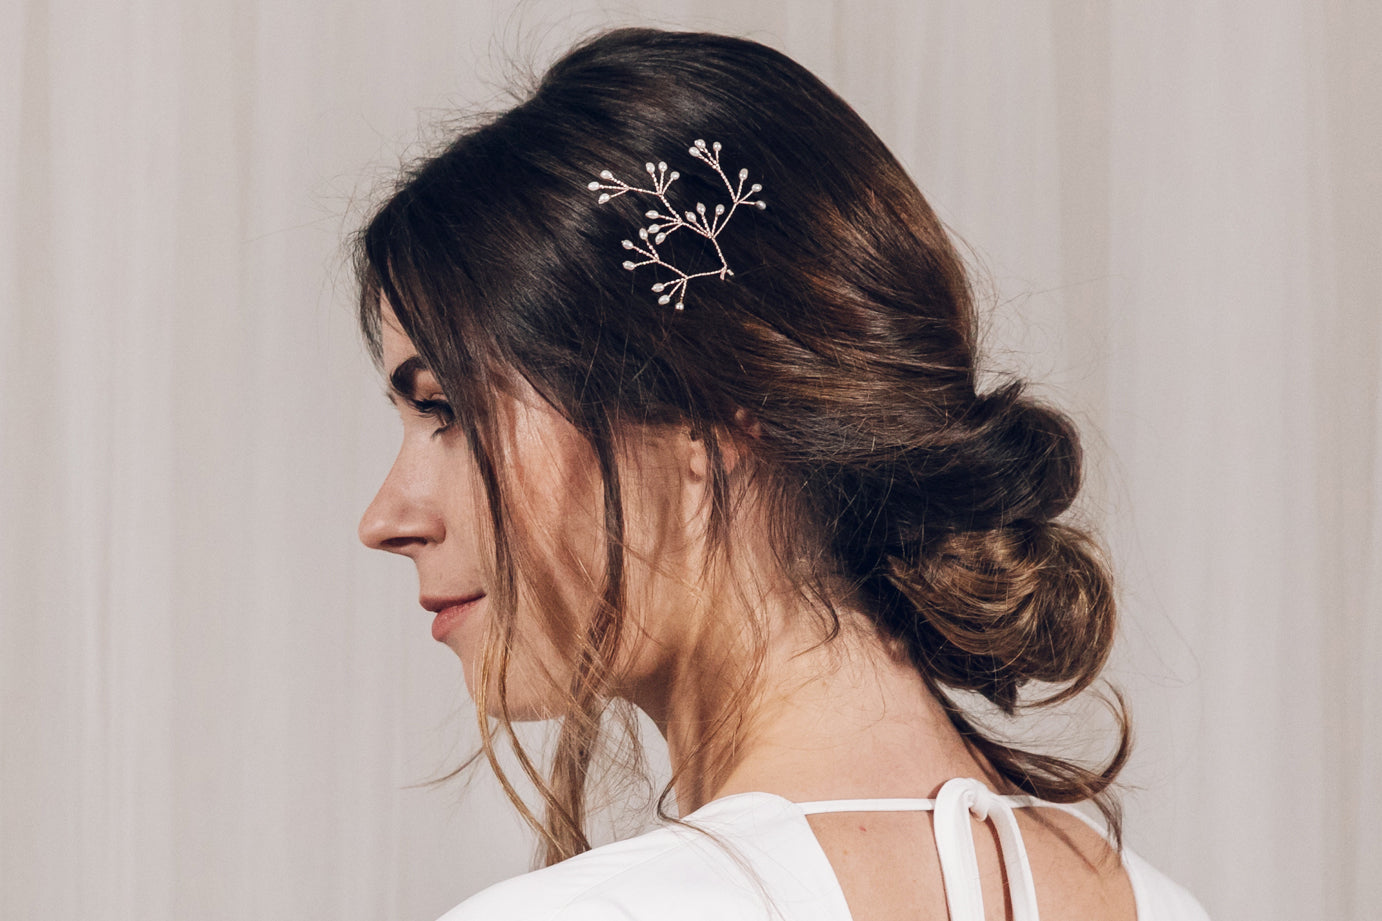 Single large Celeste freshwater pearl blossom branch wedding hairpin in the side of an updo